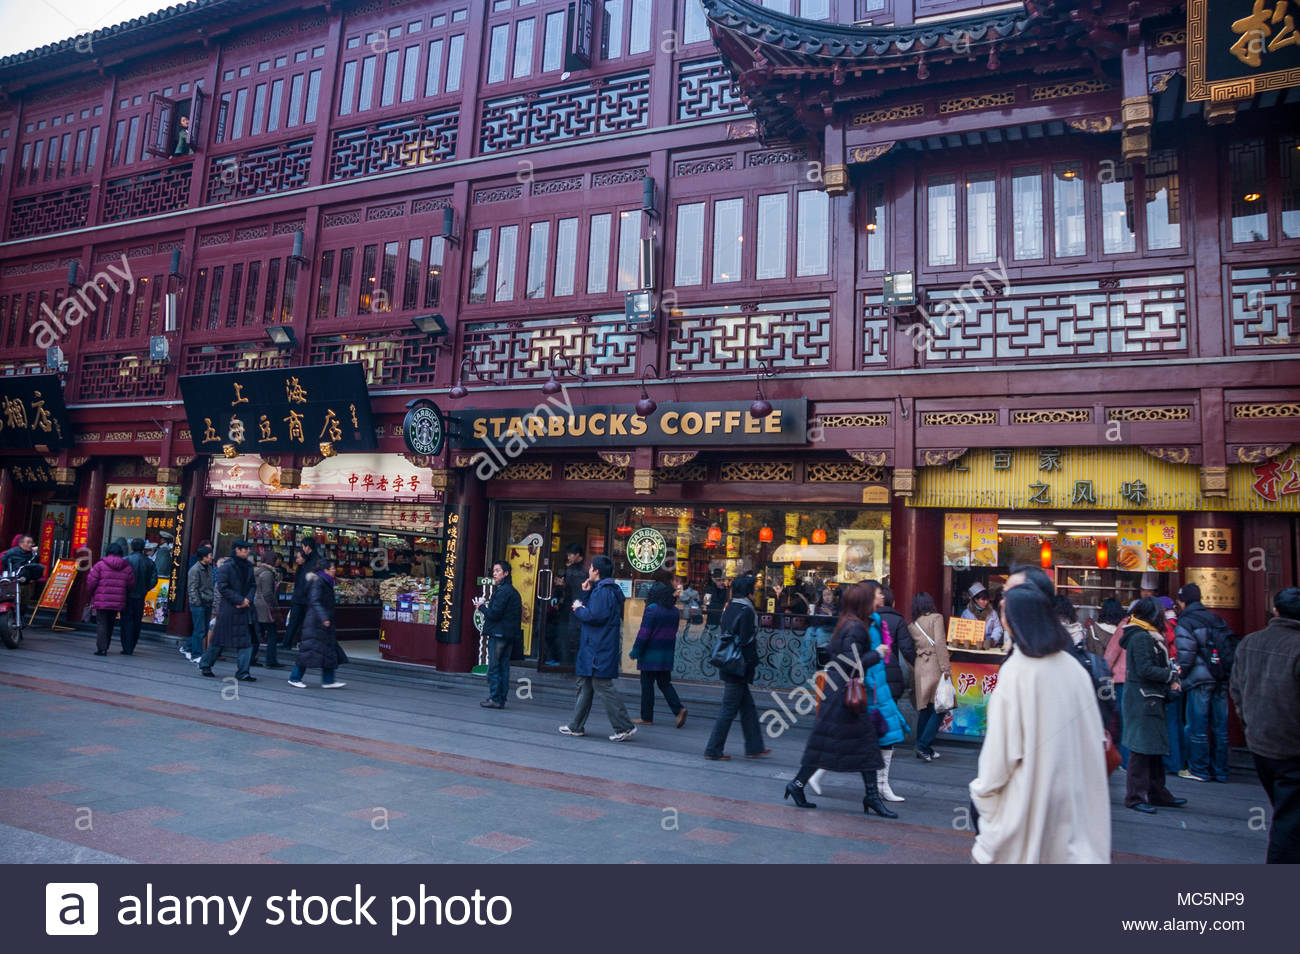 Tourists Pass A Starbucks Coffee Shop In A Traditional Looking